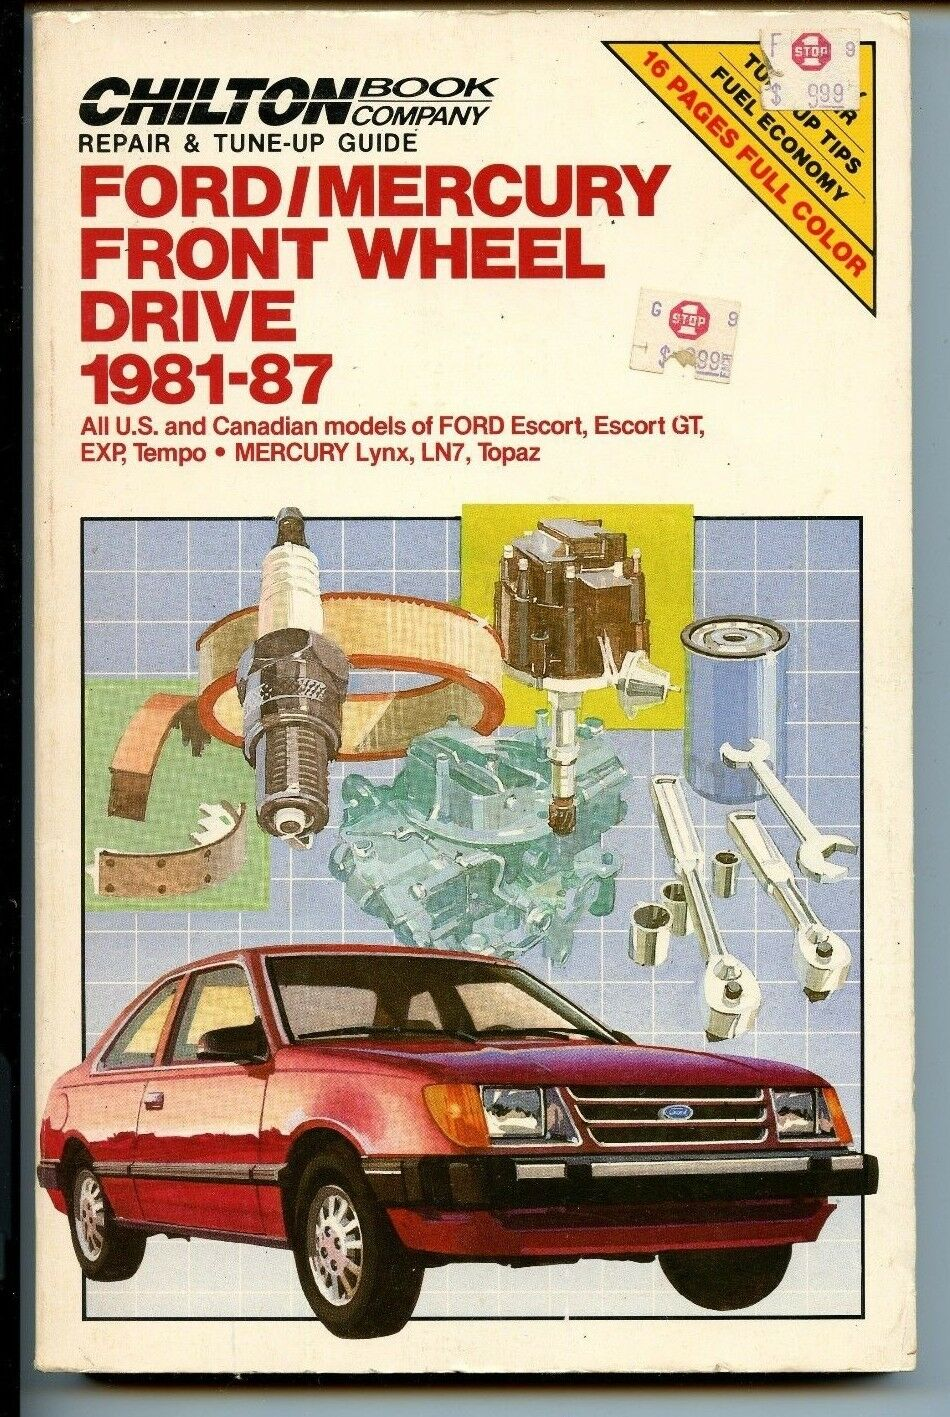 Chilton ford mercury front wheel drive 1981 1987 by w calvin settle chilton ford mercury front wheel drive 1981 1987 by w calvin settle and richard j rivele 1987 paperback ebay fandeluxe Images